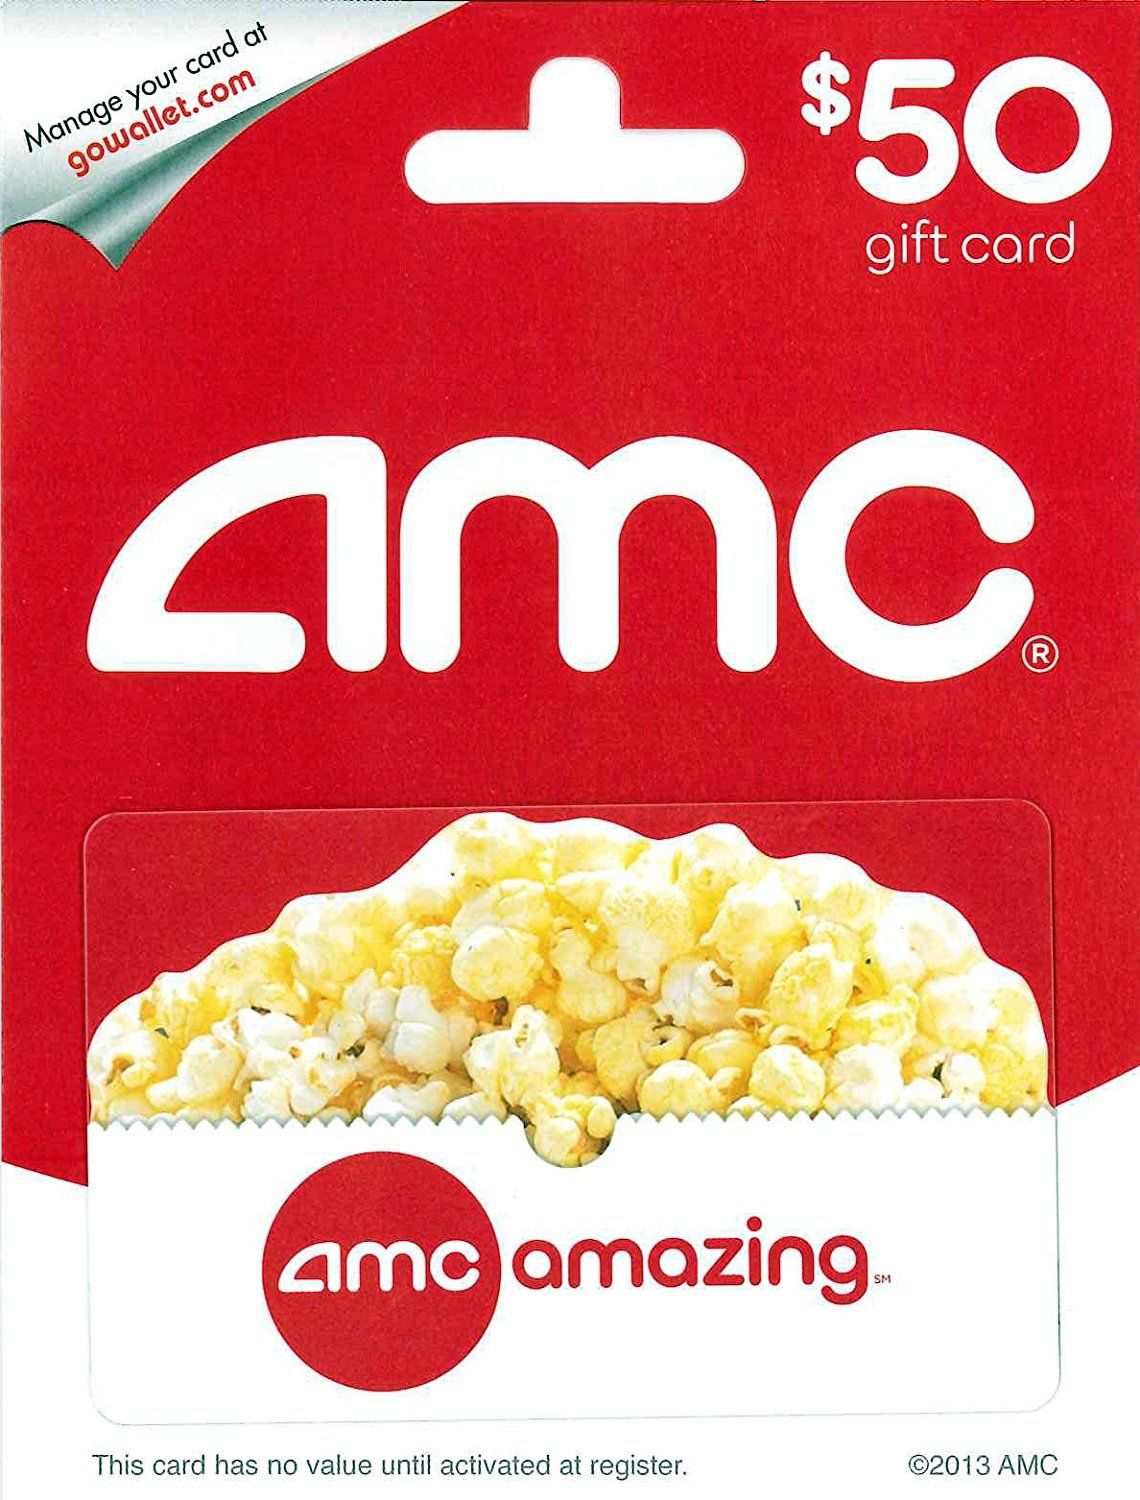 Amc theatre gift card find out more details by clicking